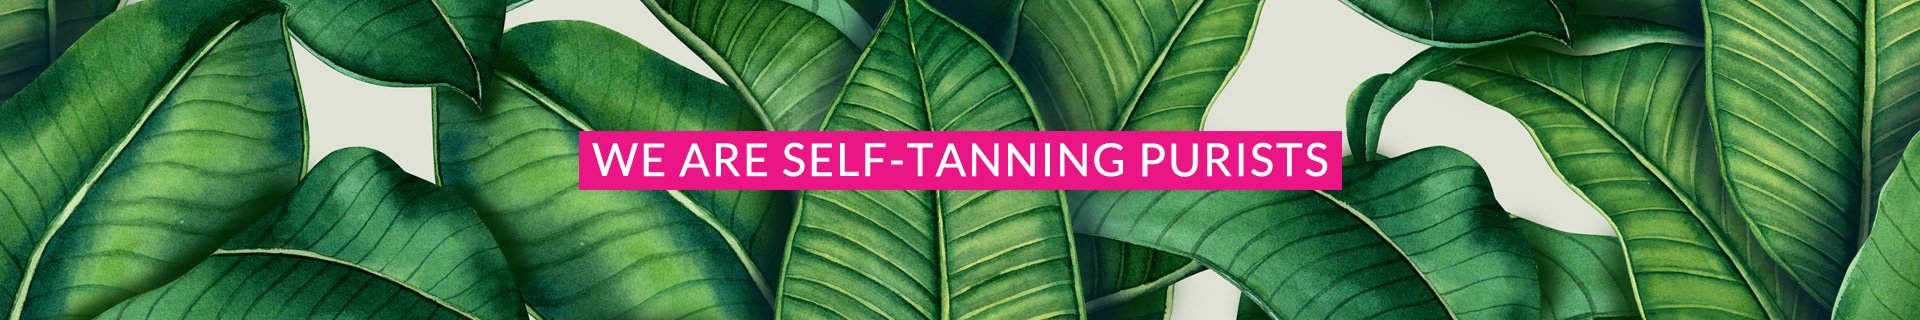 WE ARE SELF-TANNING PURISTS